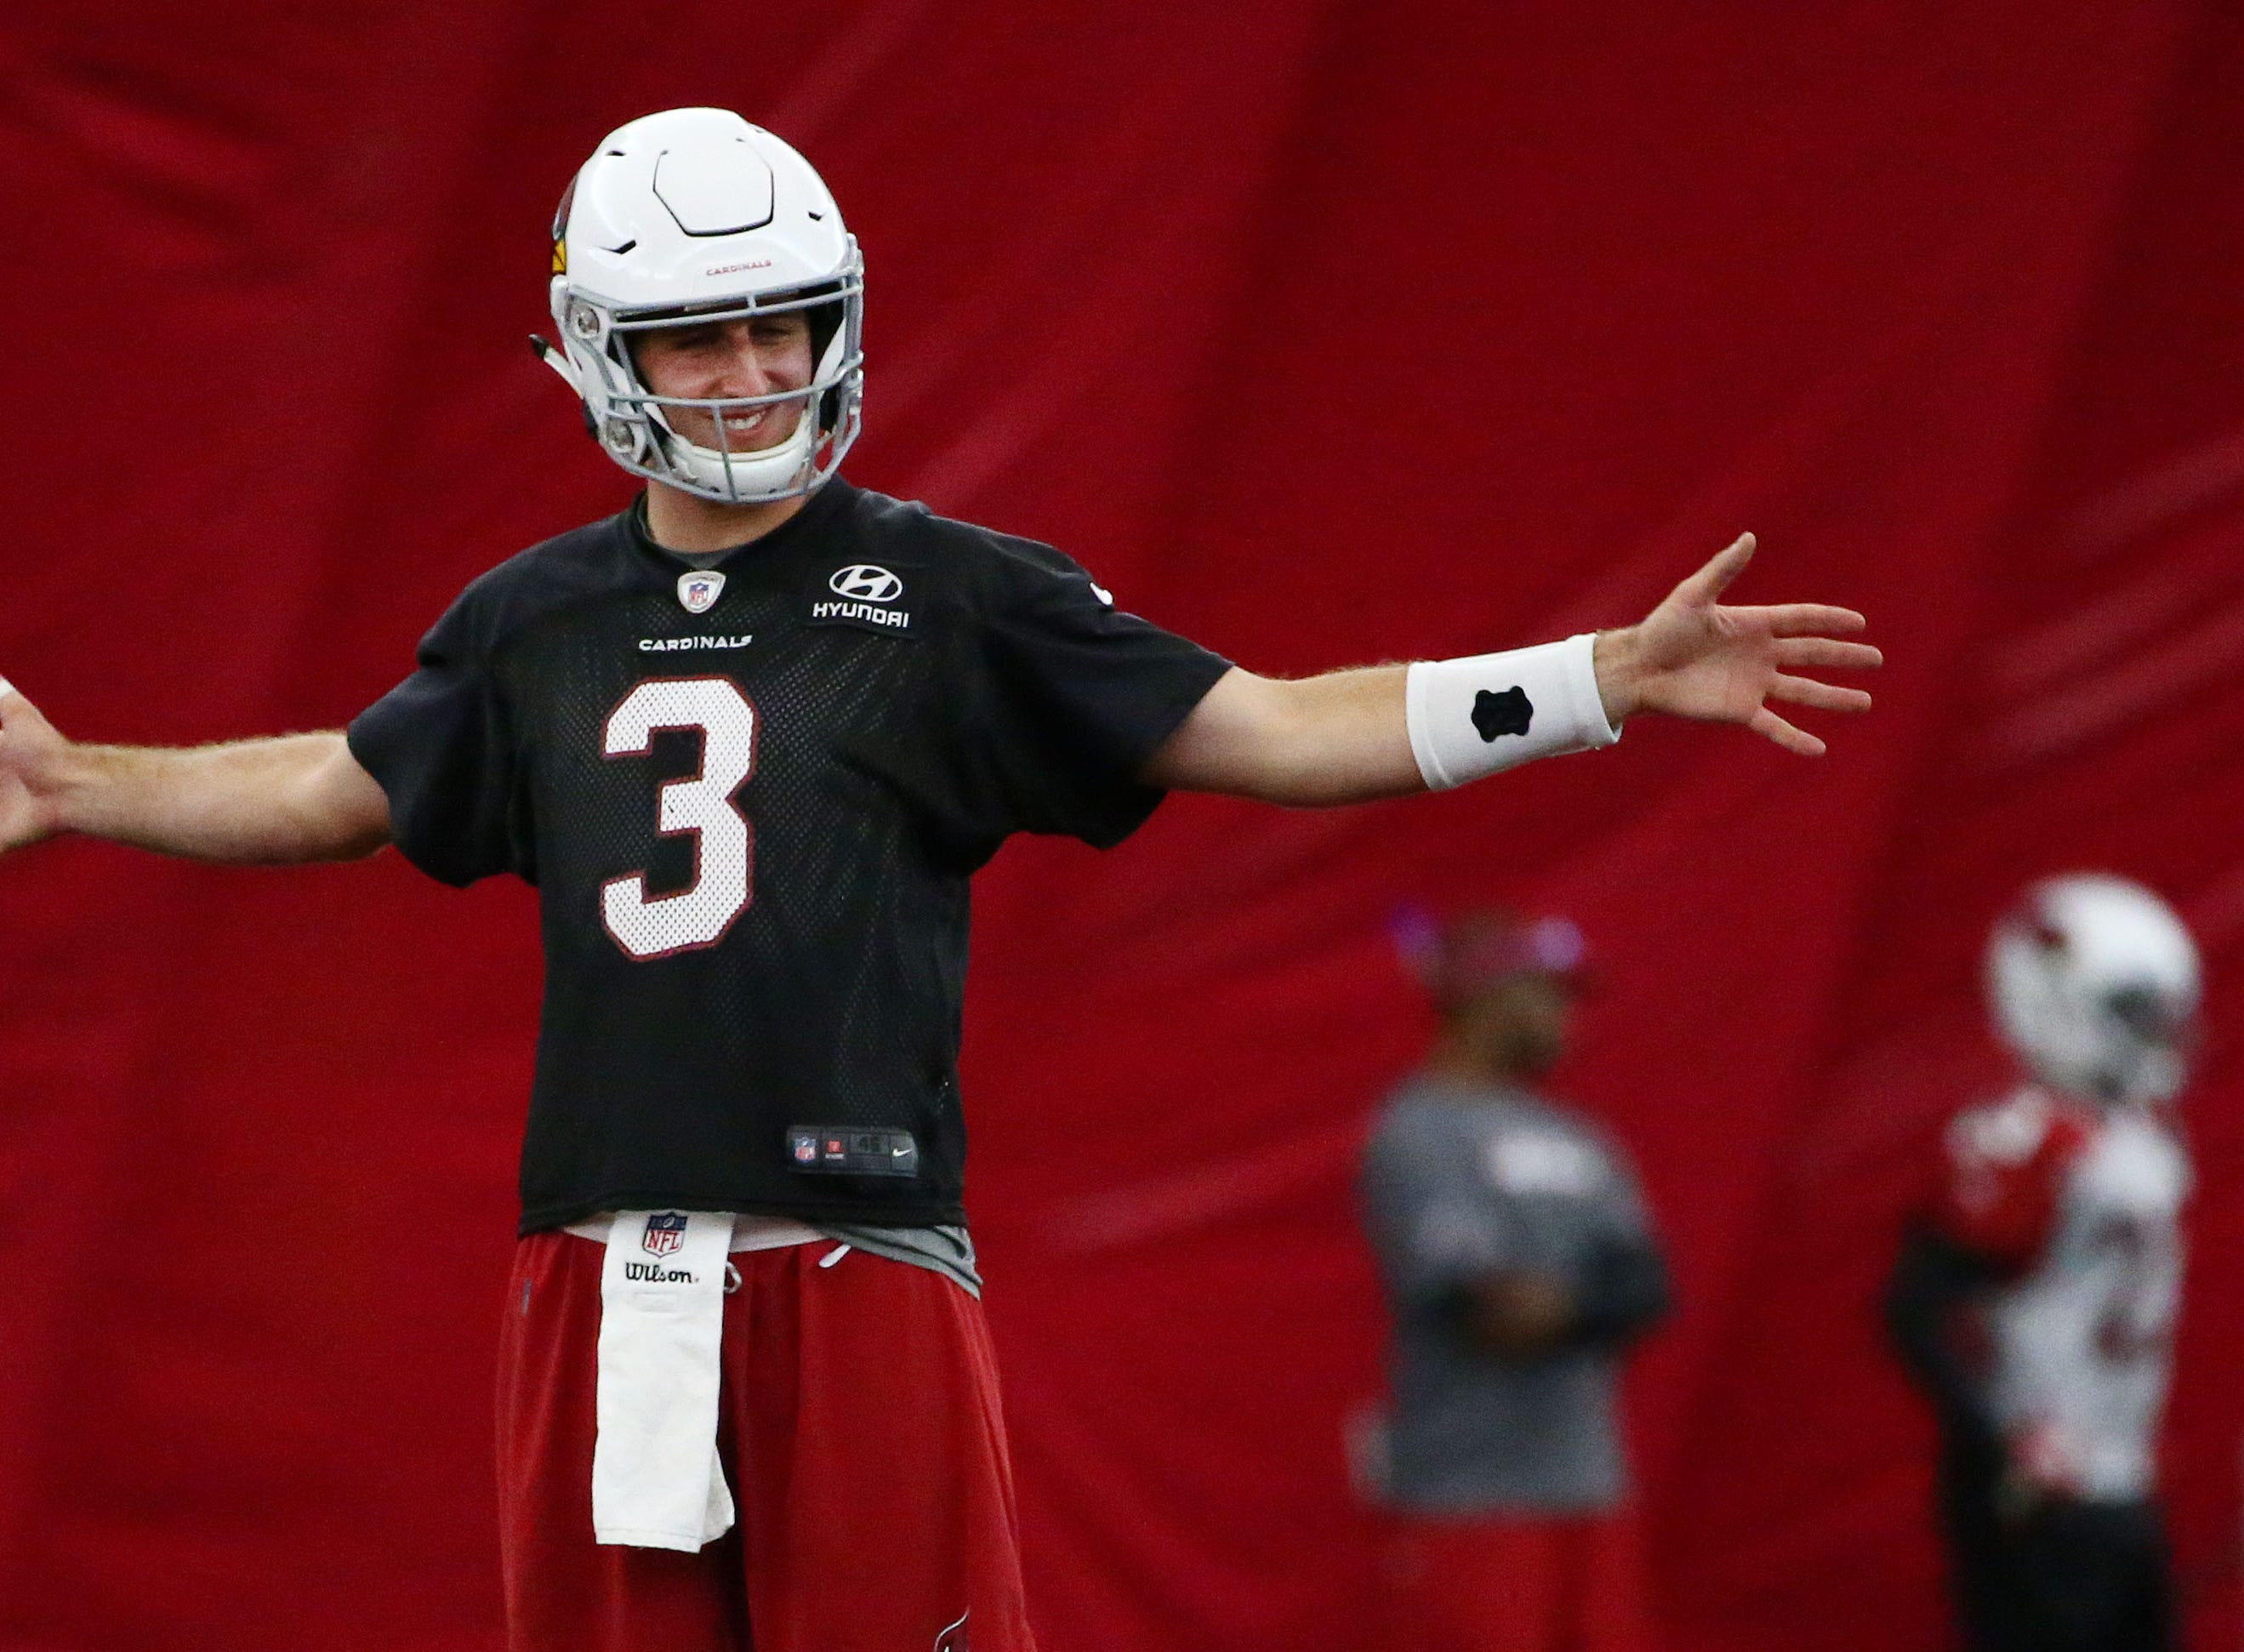 Arizona Cardinals quarterback Josh Rosen on Sep. 19, 2018 at the Cardinals Training Facility in Tempe, Ariz.